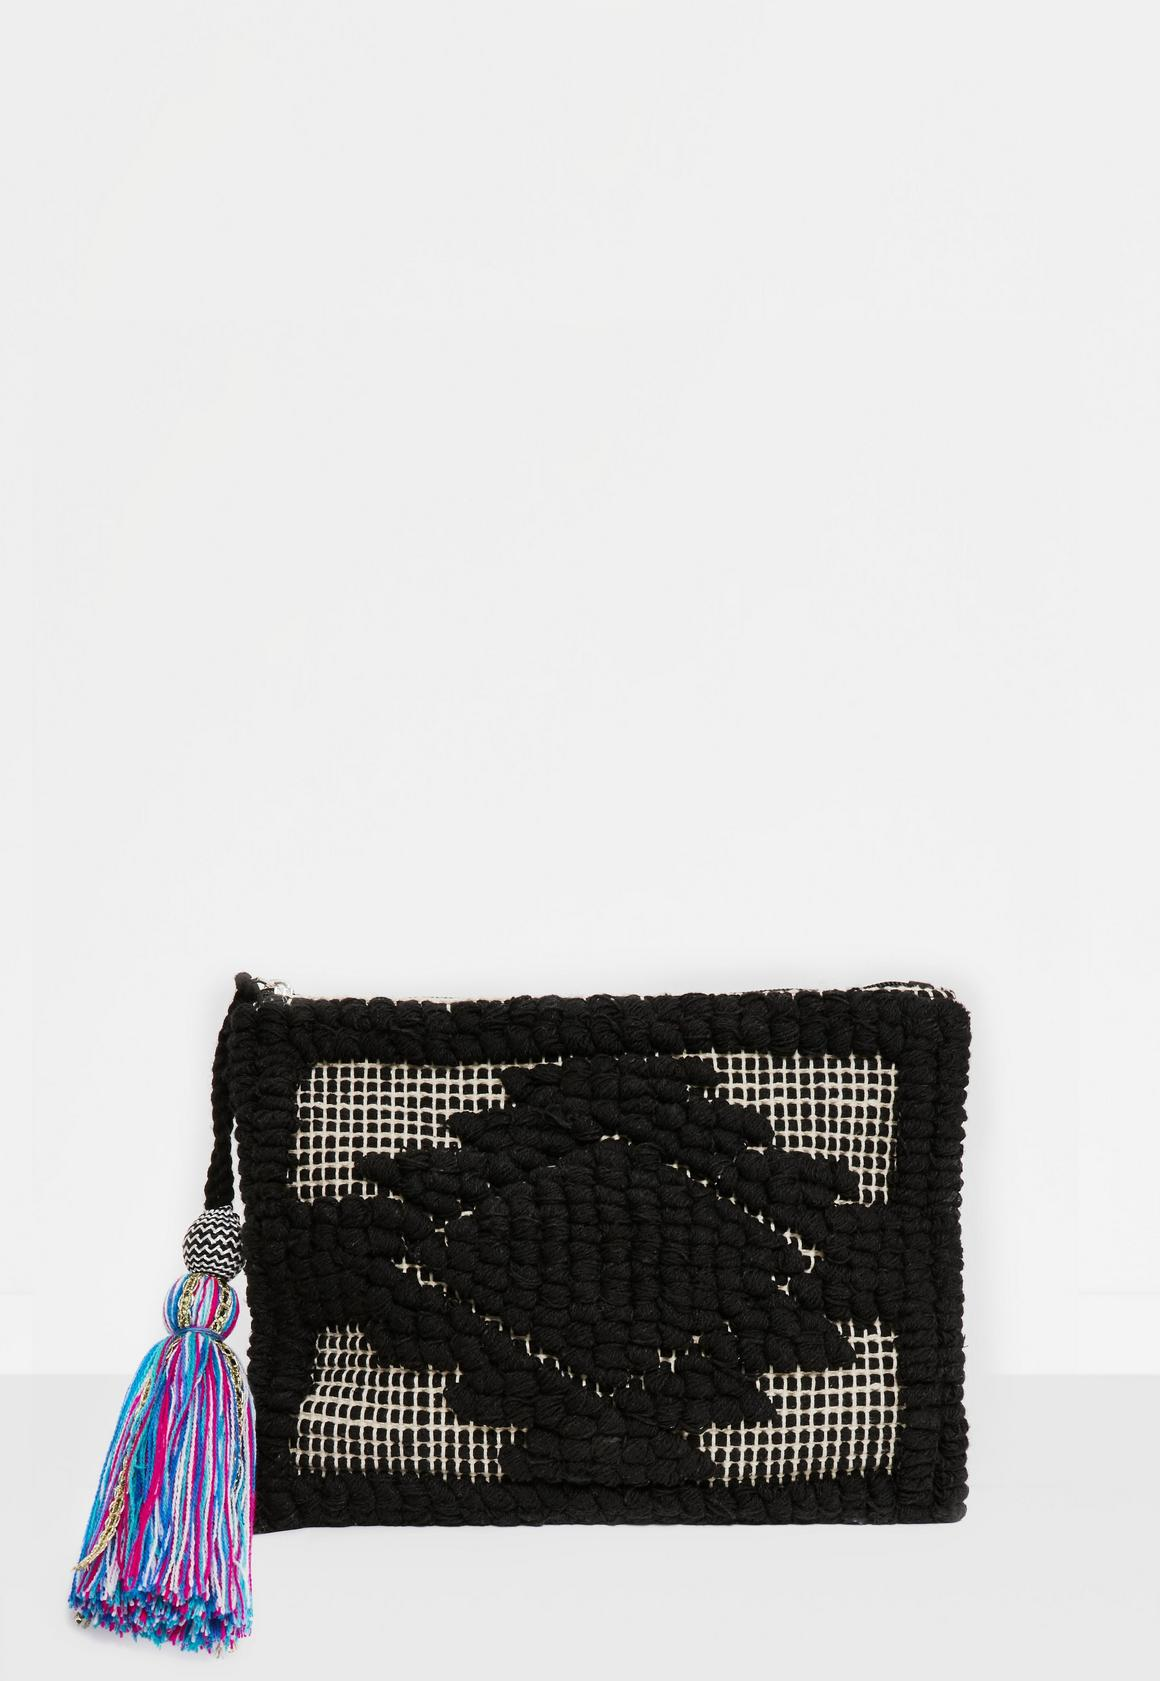 Clutch Bags Online | Black, Nude & White - Missguided